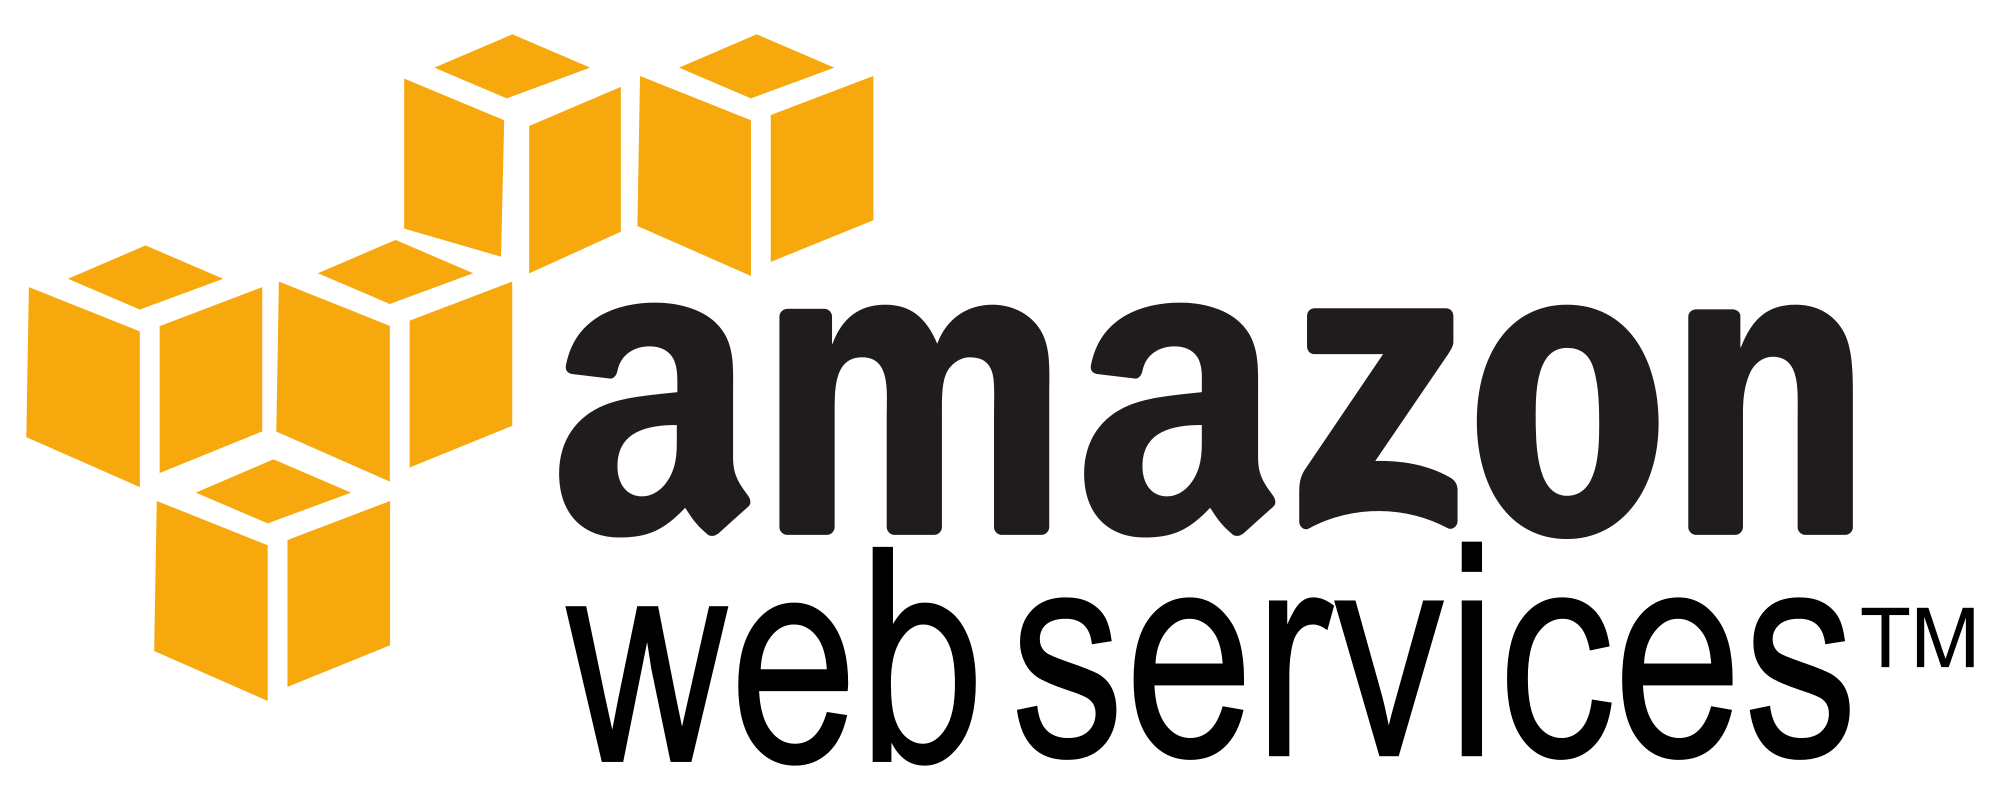 https://res.cloudinary.com/pagnihotry/image/upload/v1532367462/pagnihotry/AWS_logo.png